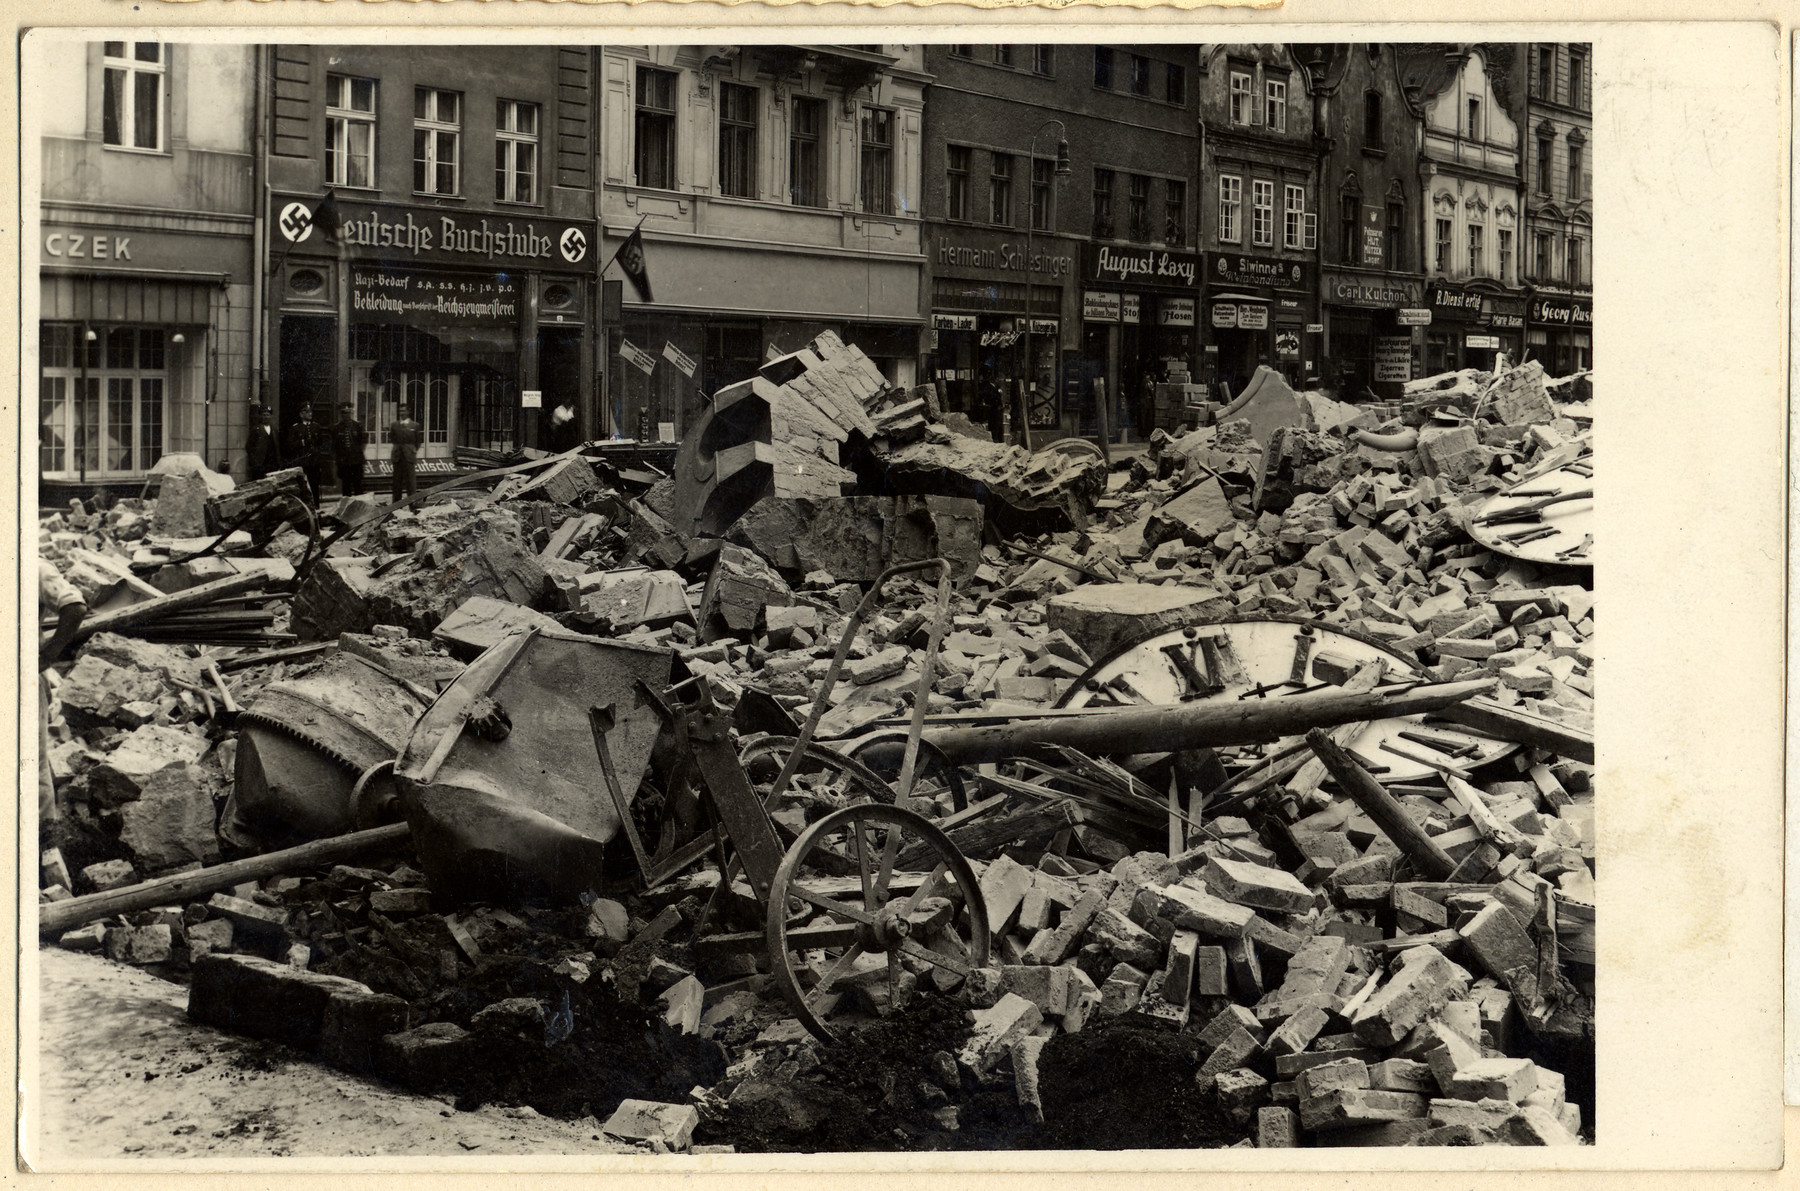 View of a major artery in Oppeln after the collapse of a clock tower.  The shop in the background is a Nazified book store.